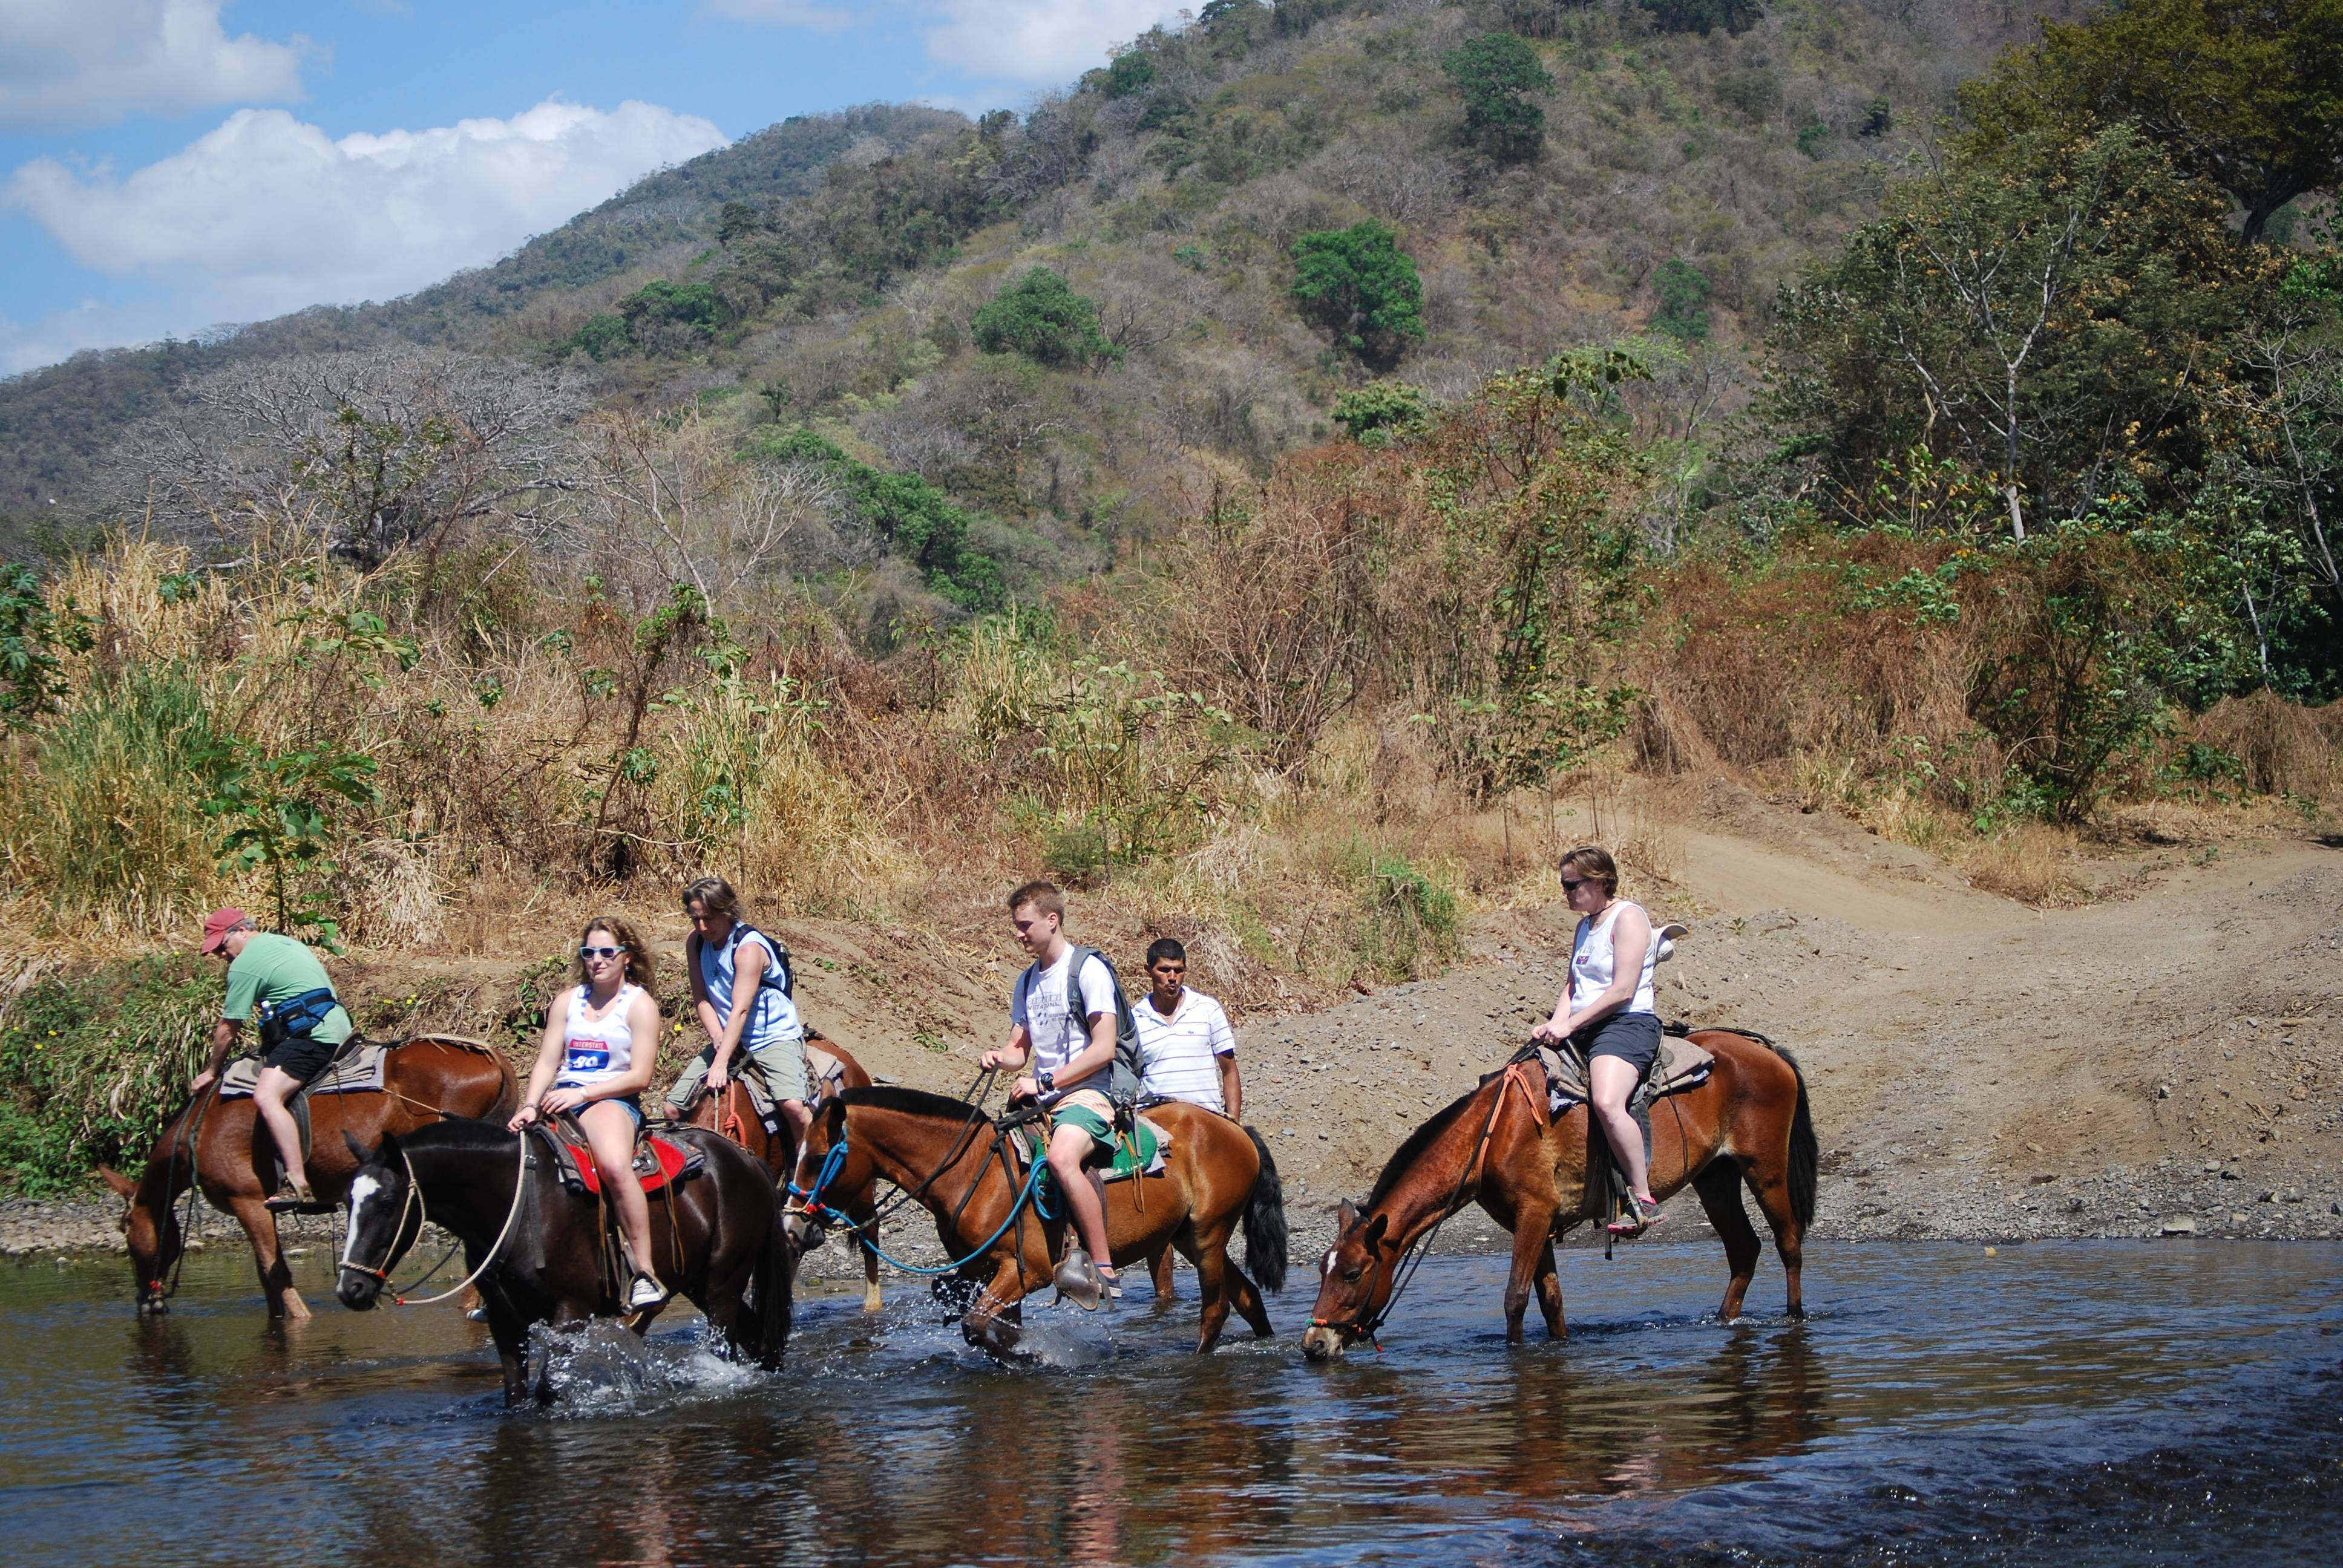 A group of horseback riders take a tour with outfitters Nosara Paradise Rentals in Nosara, Costa Rica.